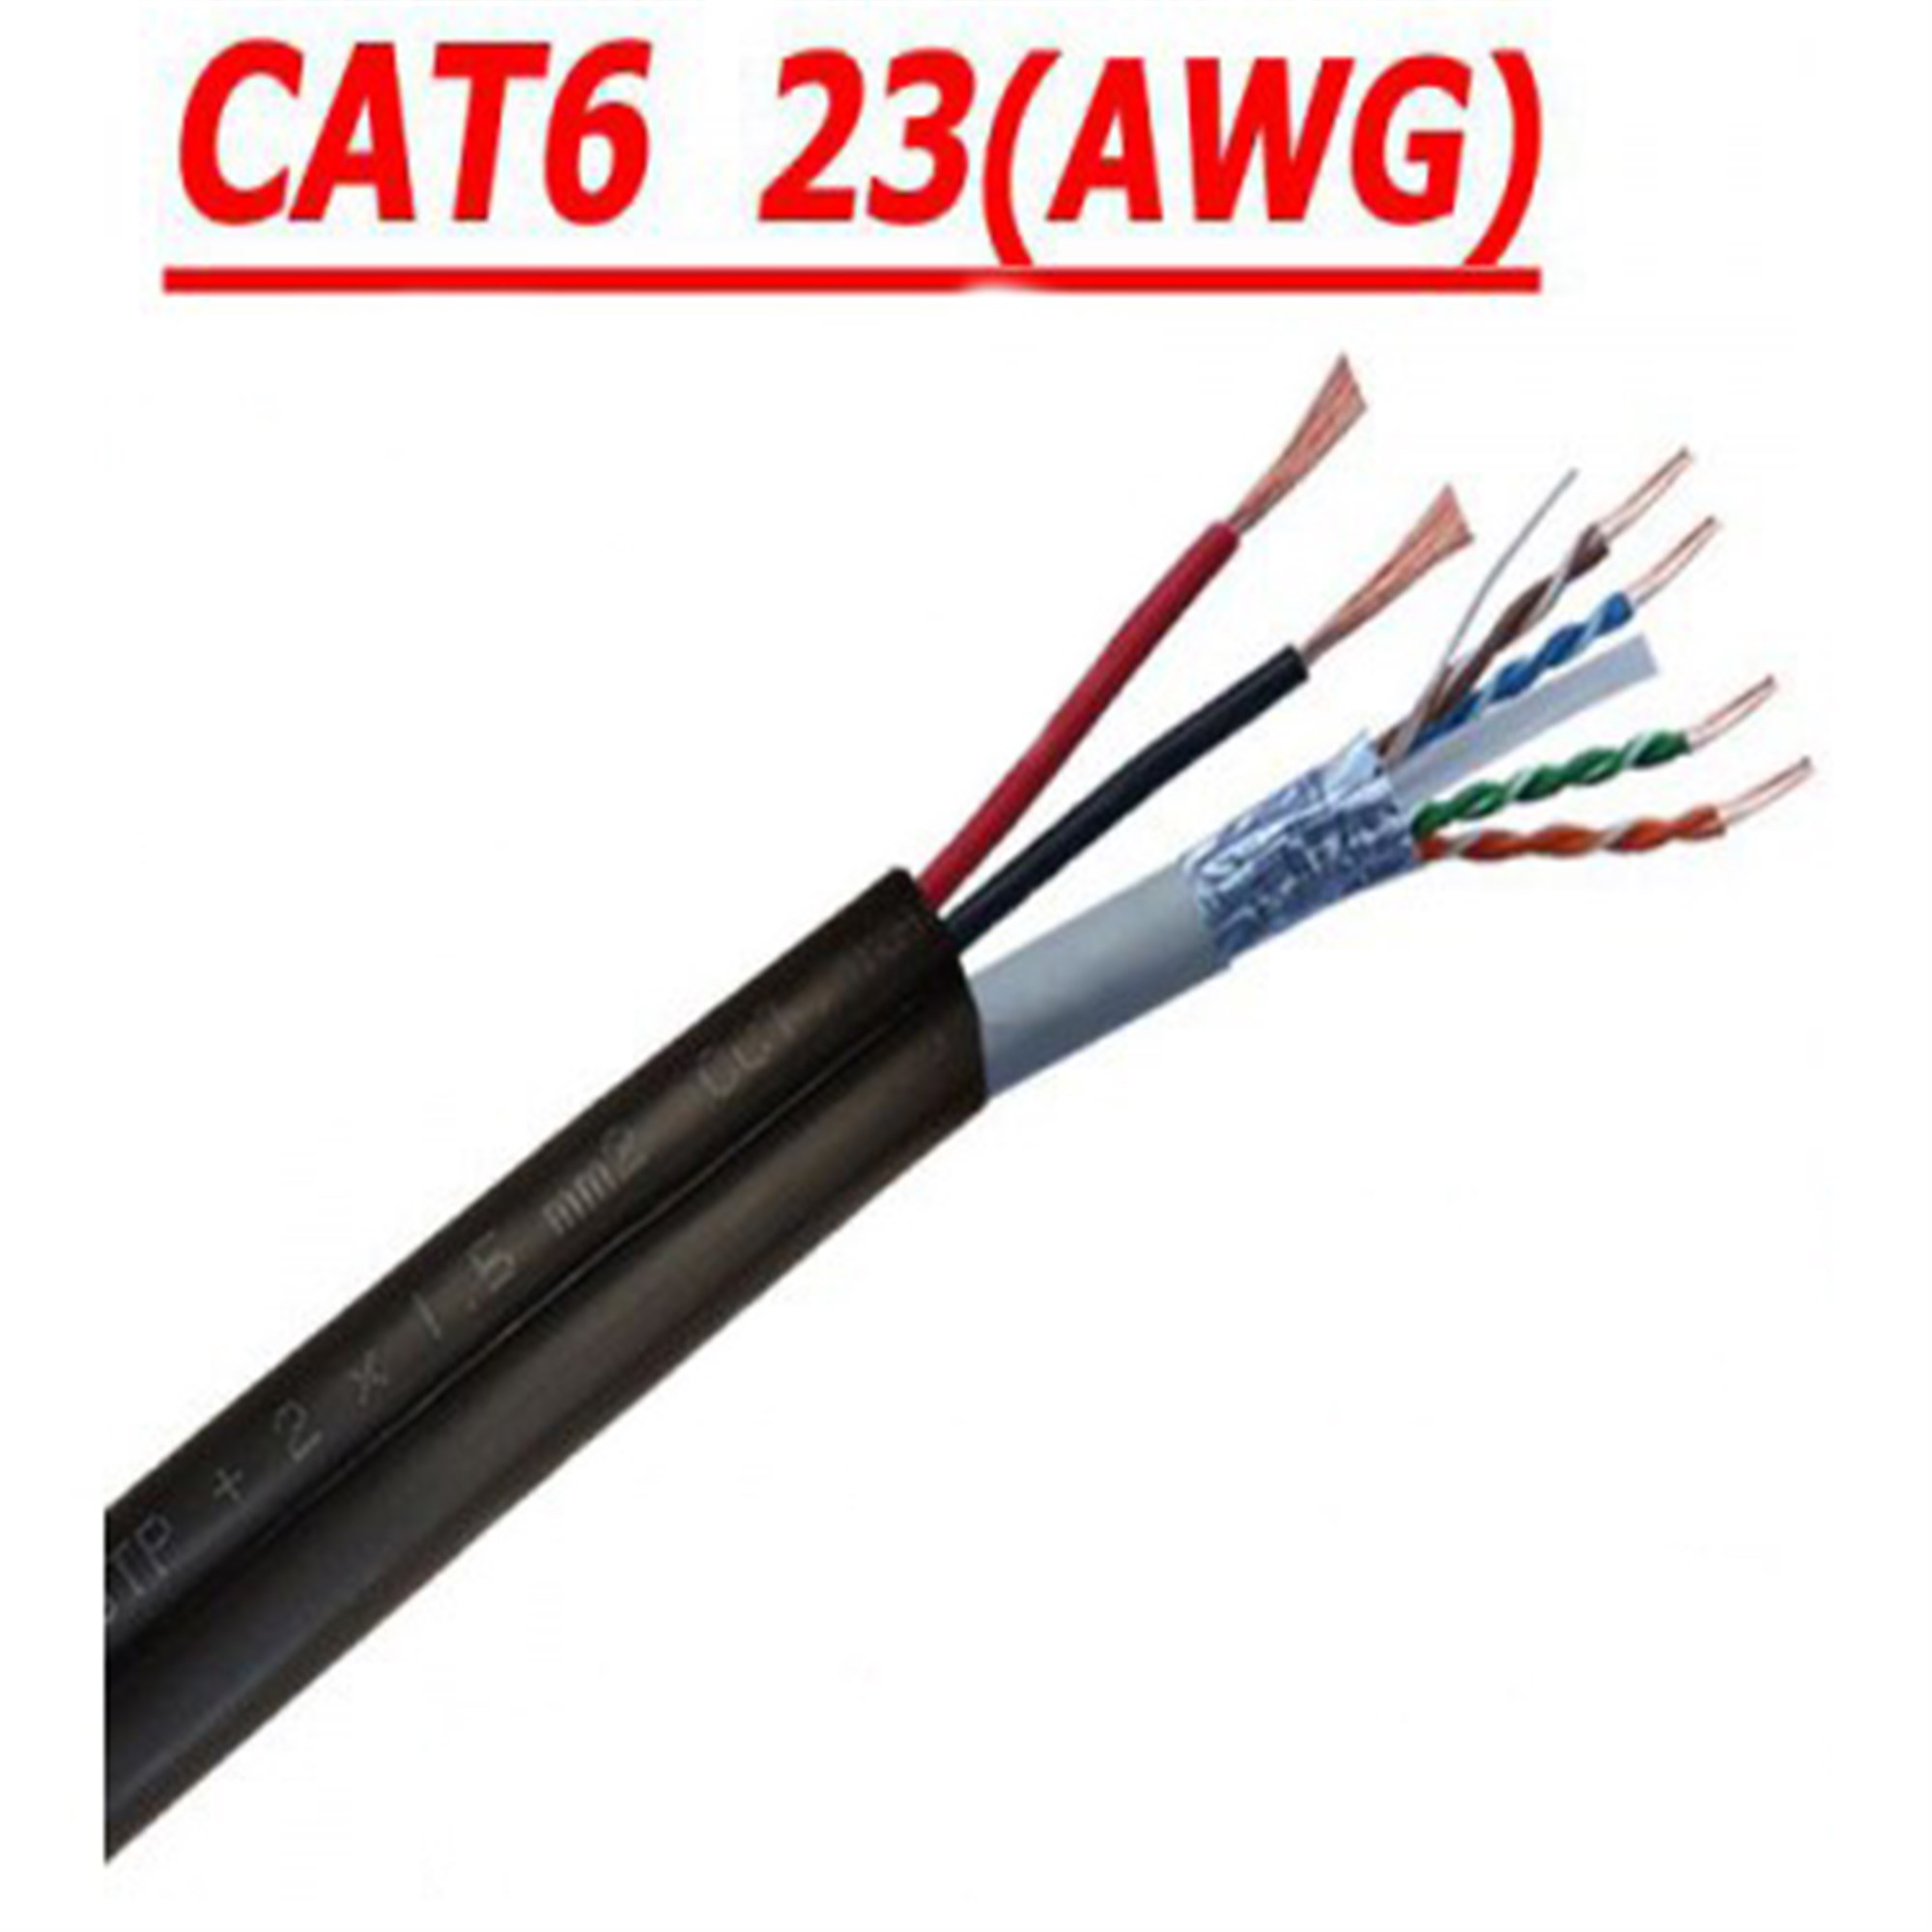 500 MT CAT 6 23AWG FTP + 2x1,5mm DUAL CCTV PE NETWORK CABLE